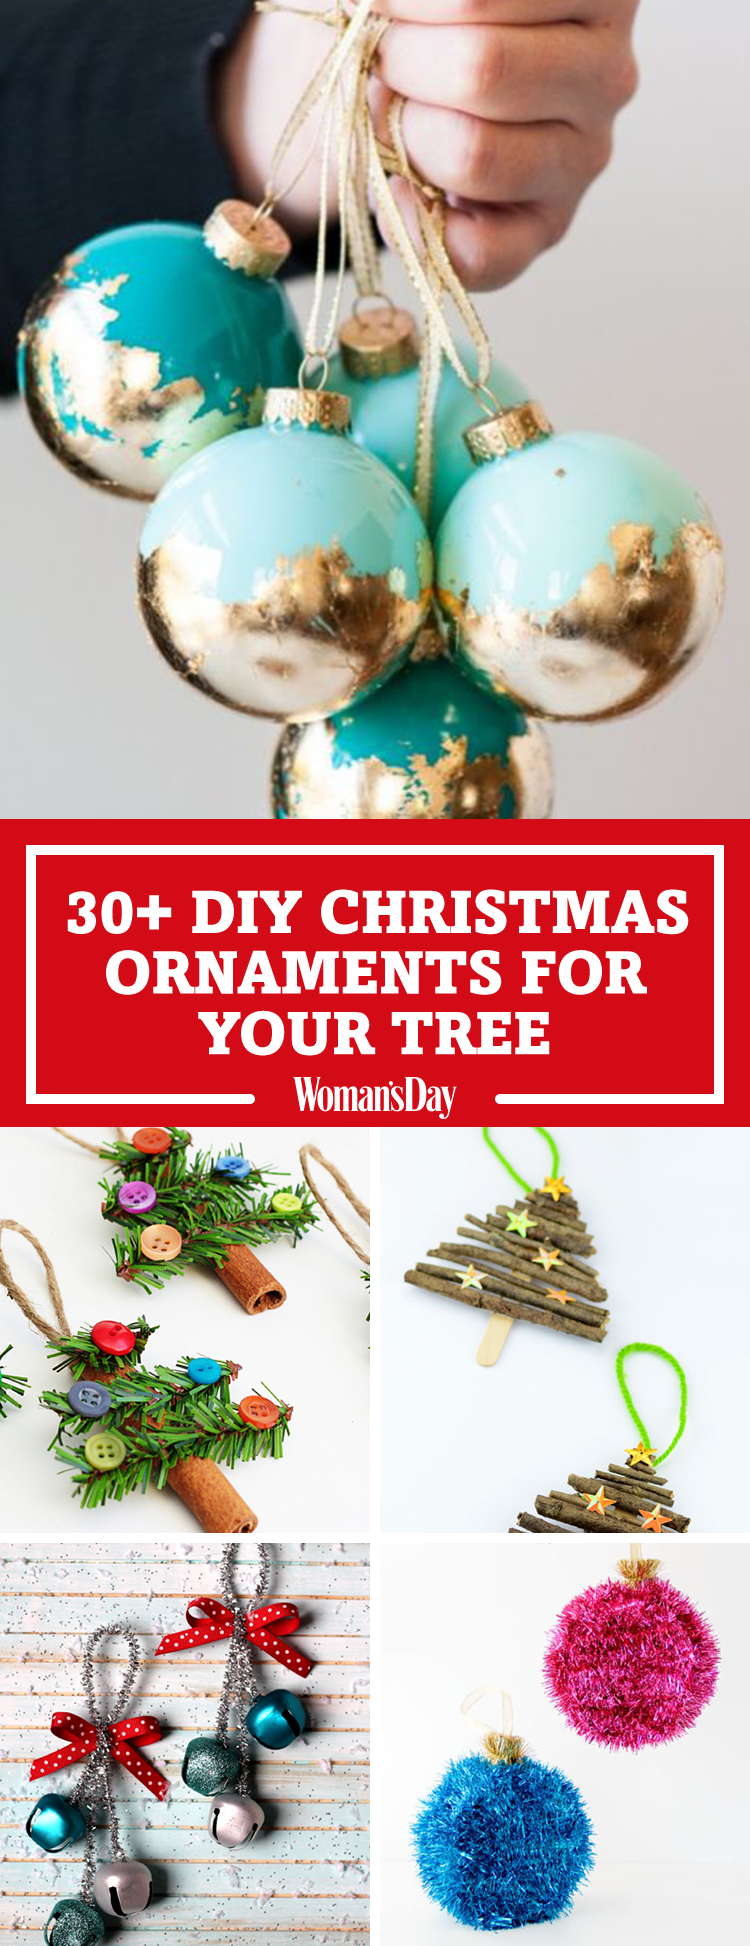 42 Homemade Diy Christmas Ornament Craft Ideas How To Make Holiday